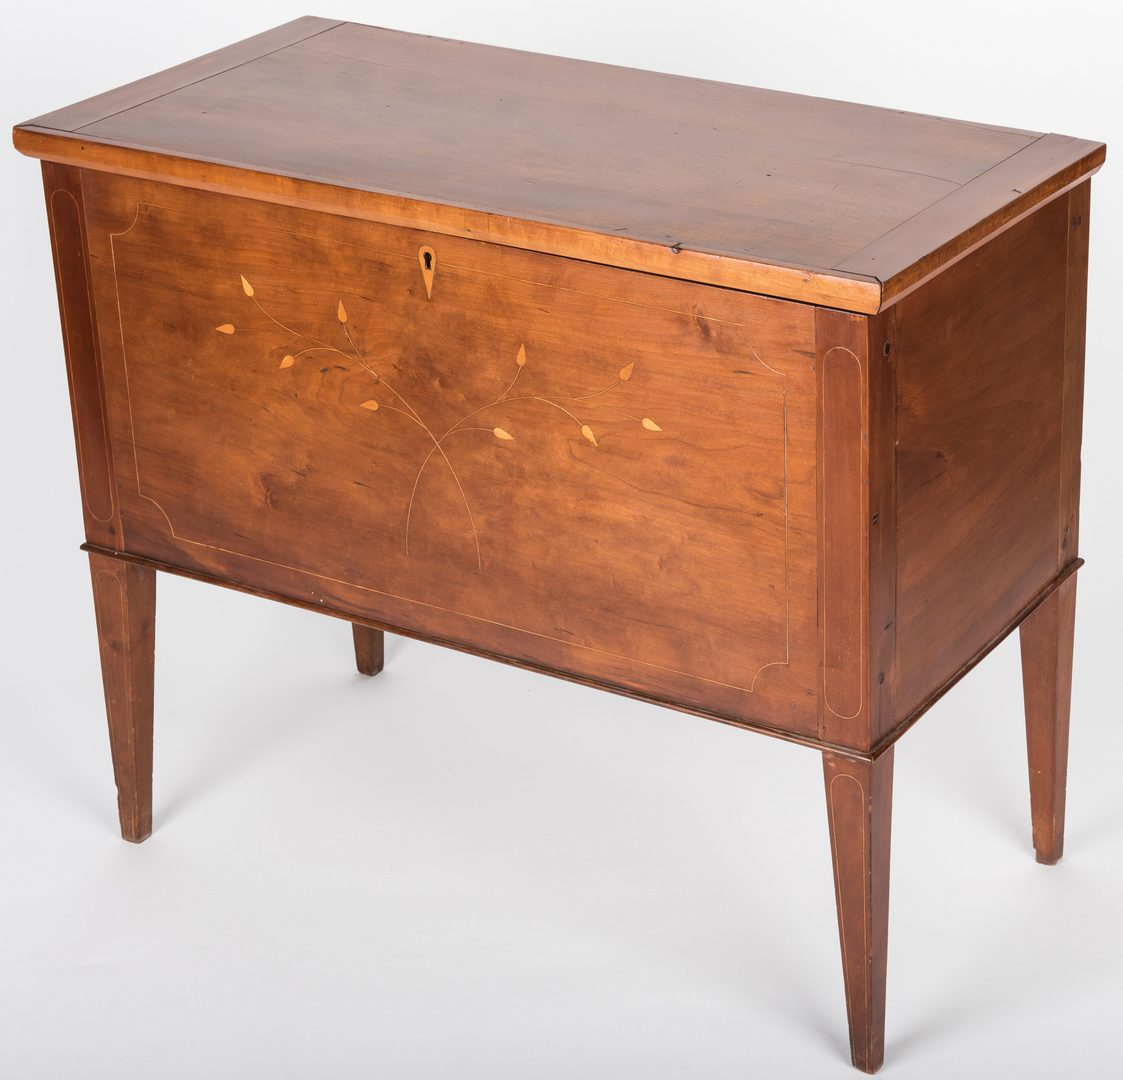 Lot 151: KY Inlaid Cherry Sugar chest